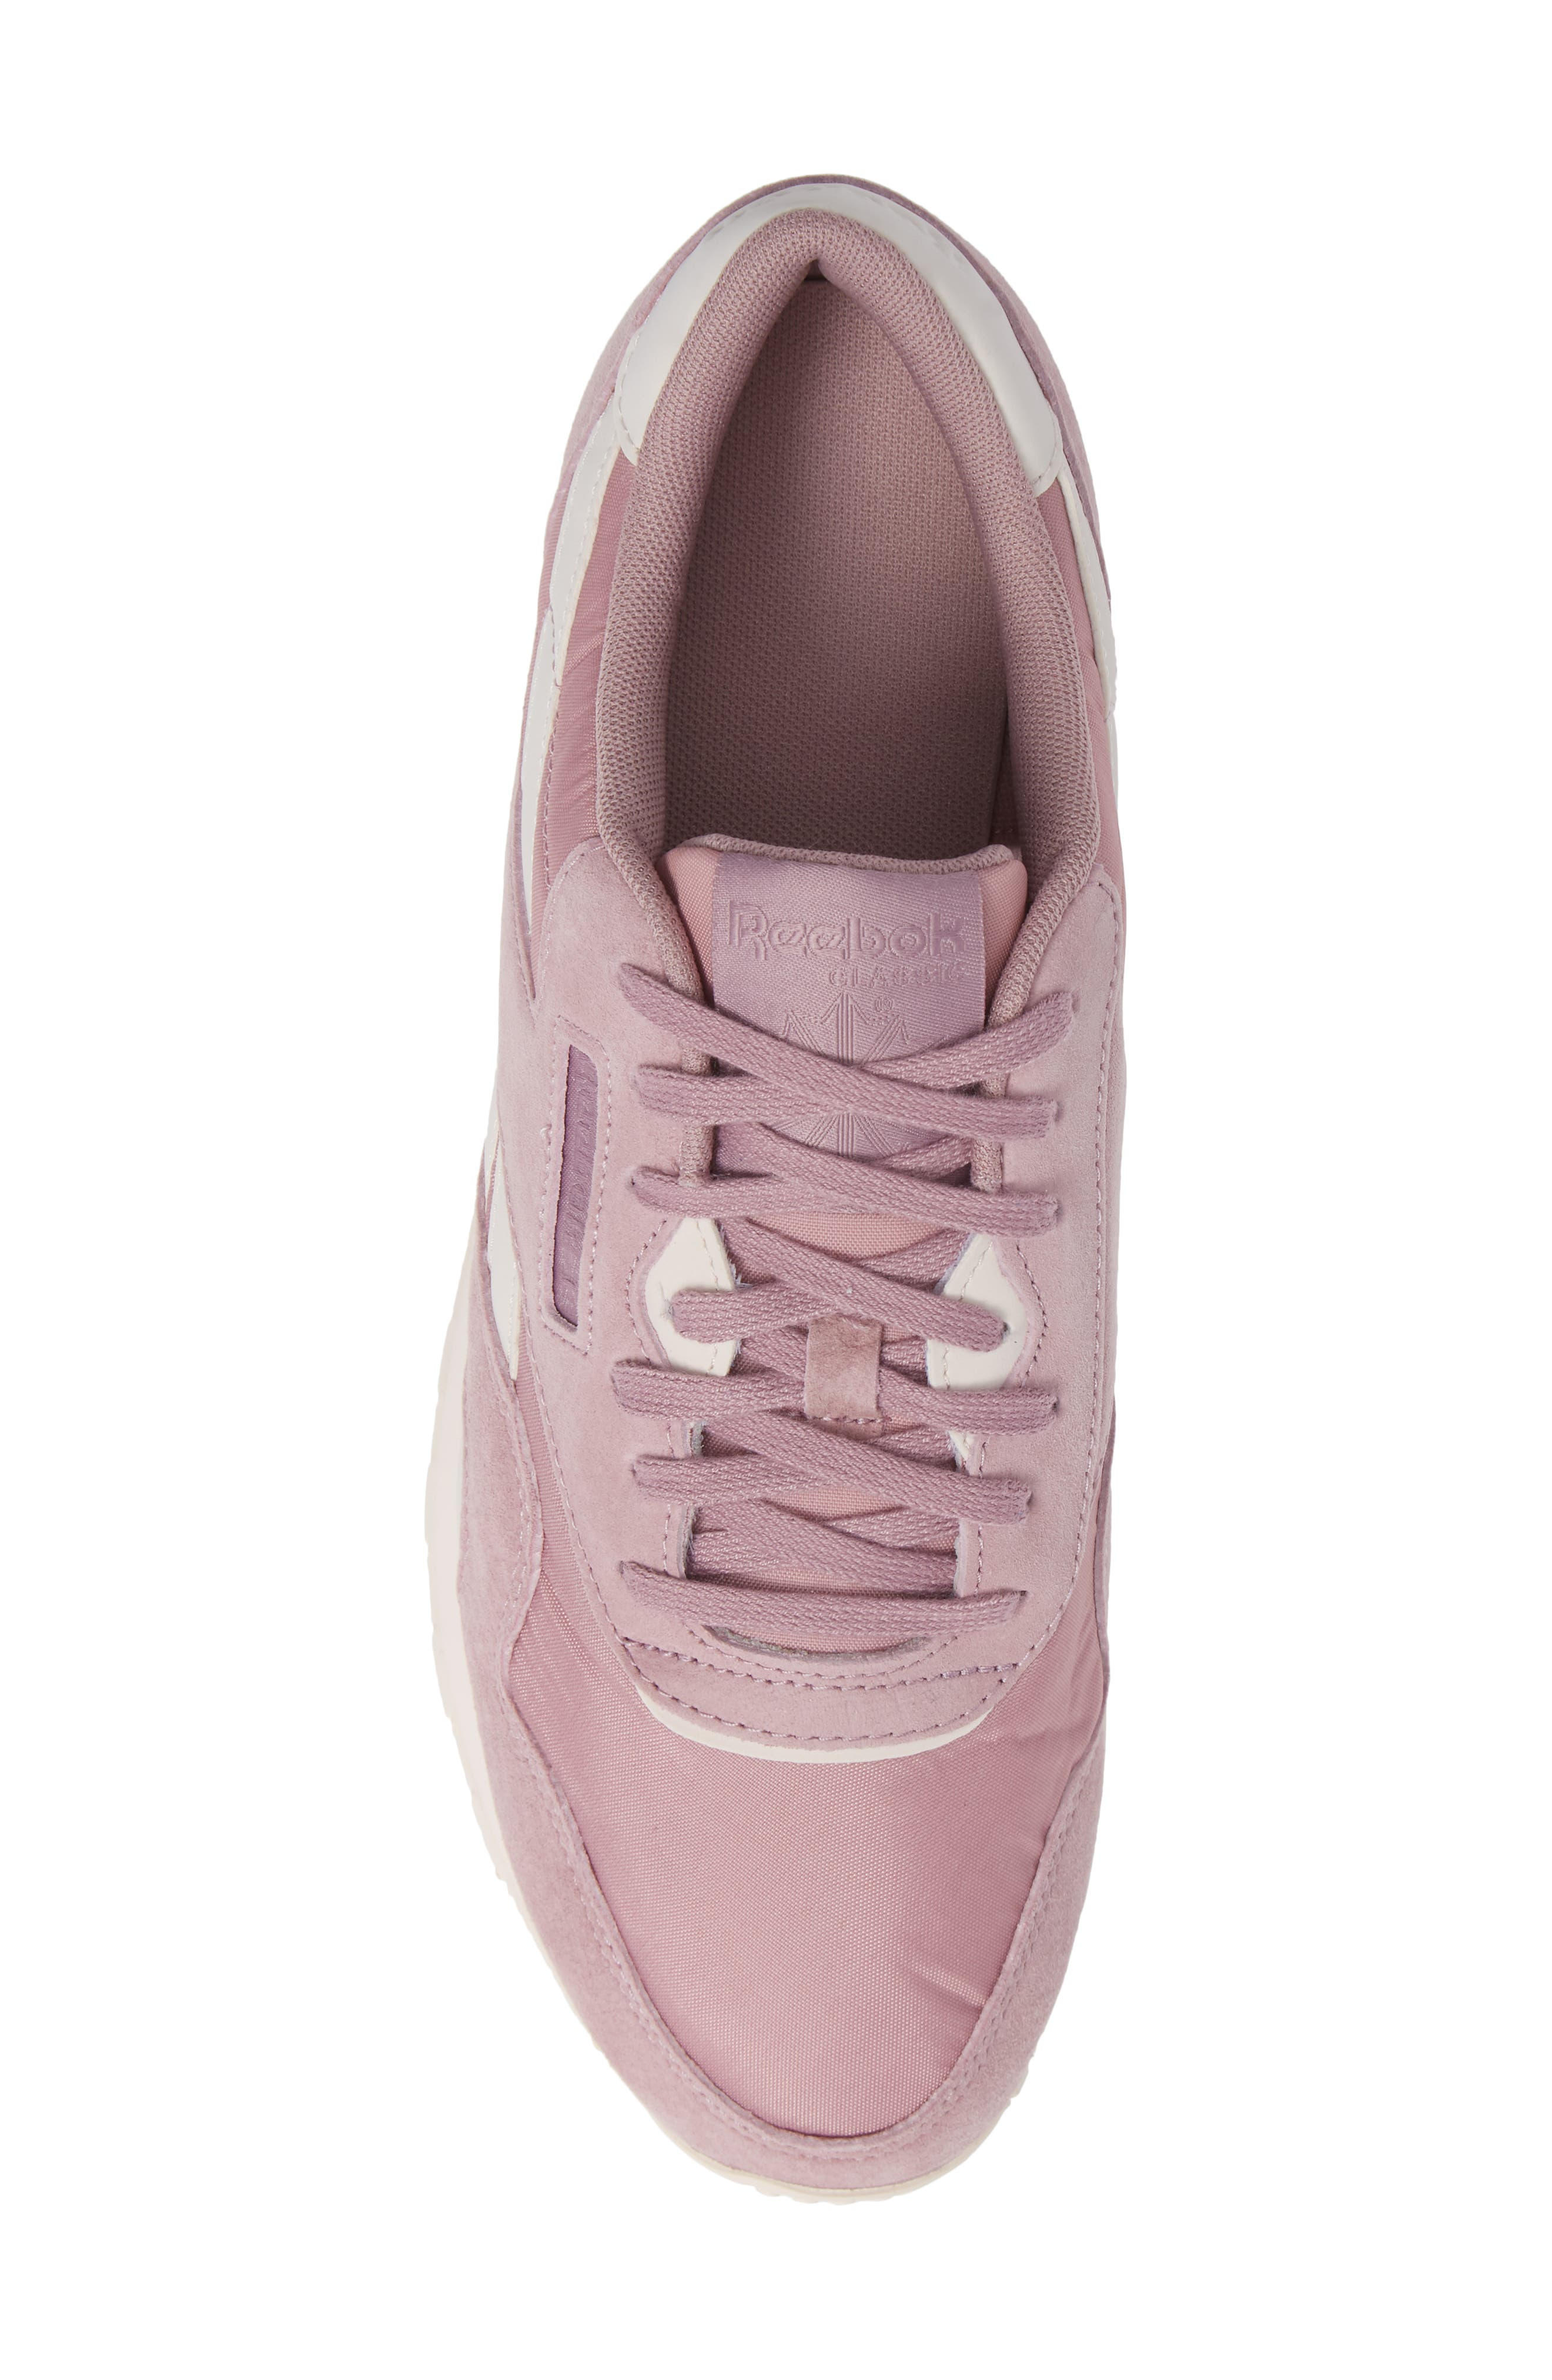 Classic Sneaker,                             Alternate thumbnail 5, color,                             INFUSED LILAC/ PALE PINK